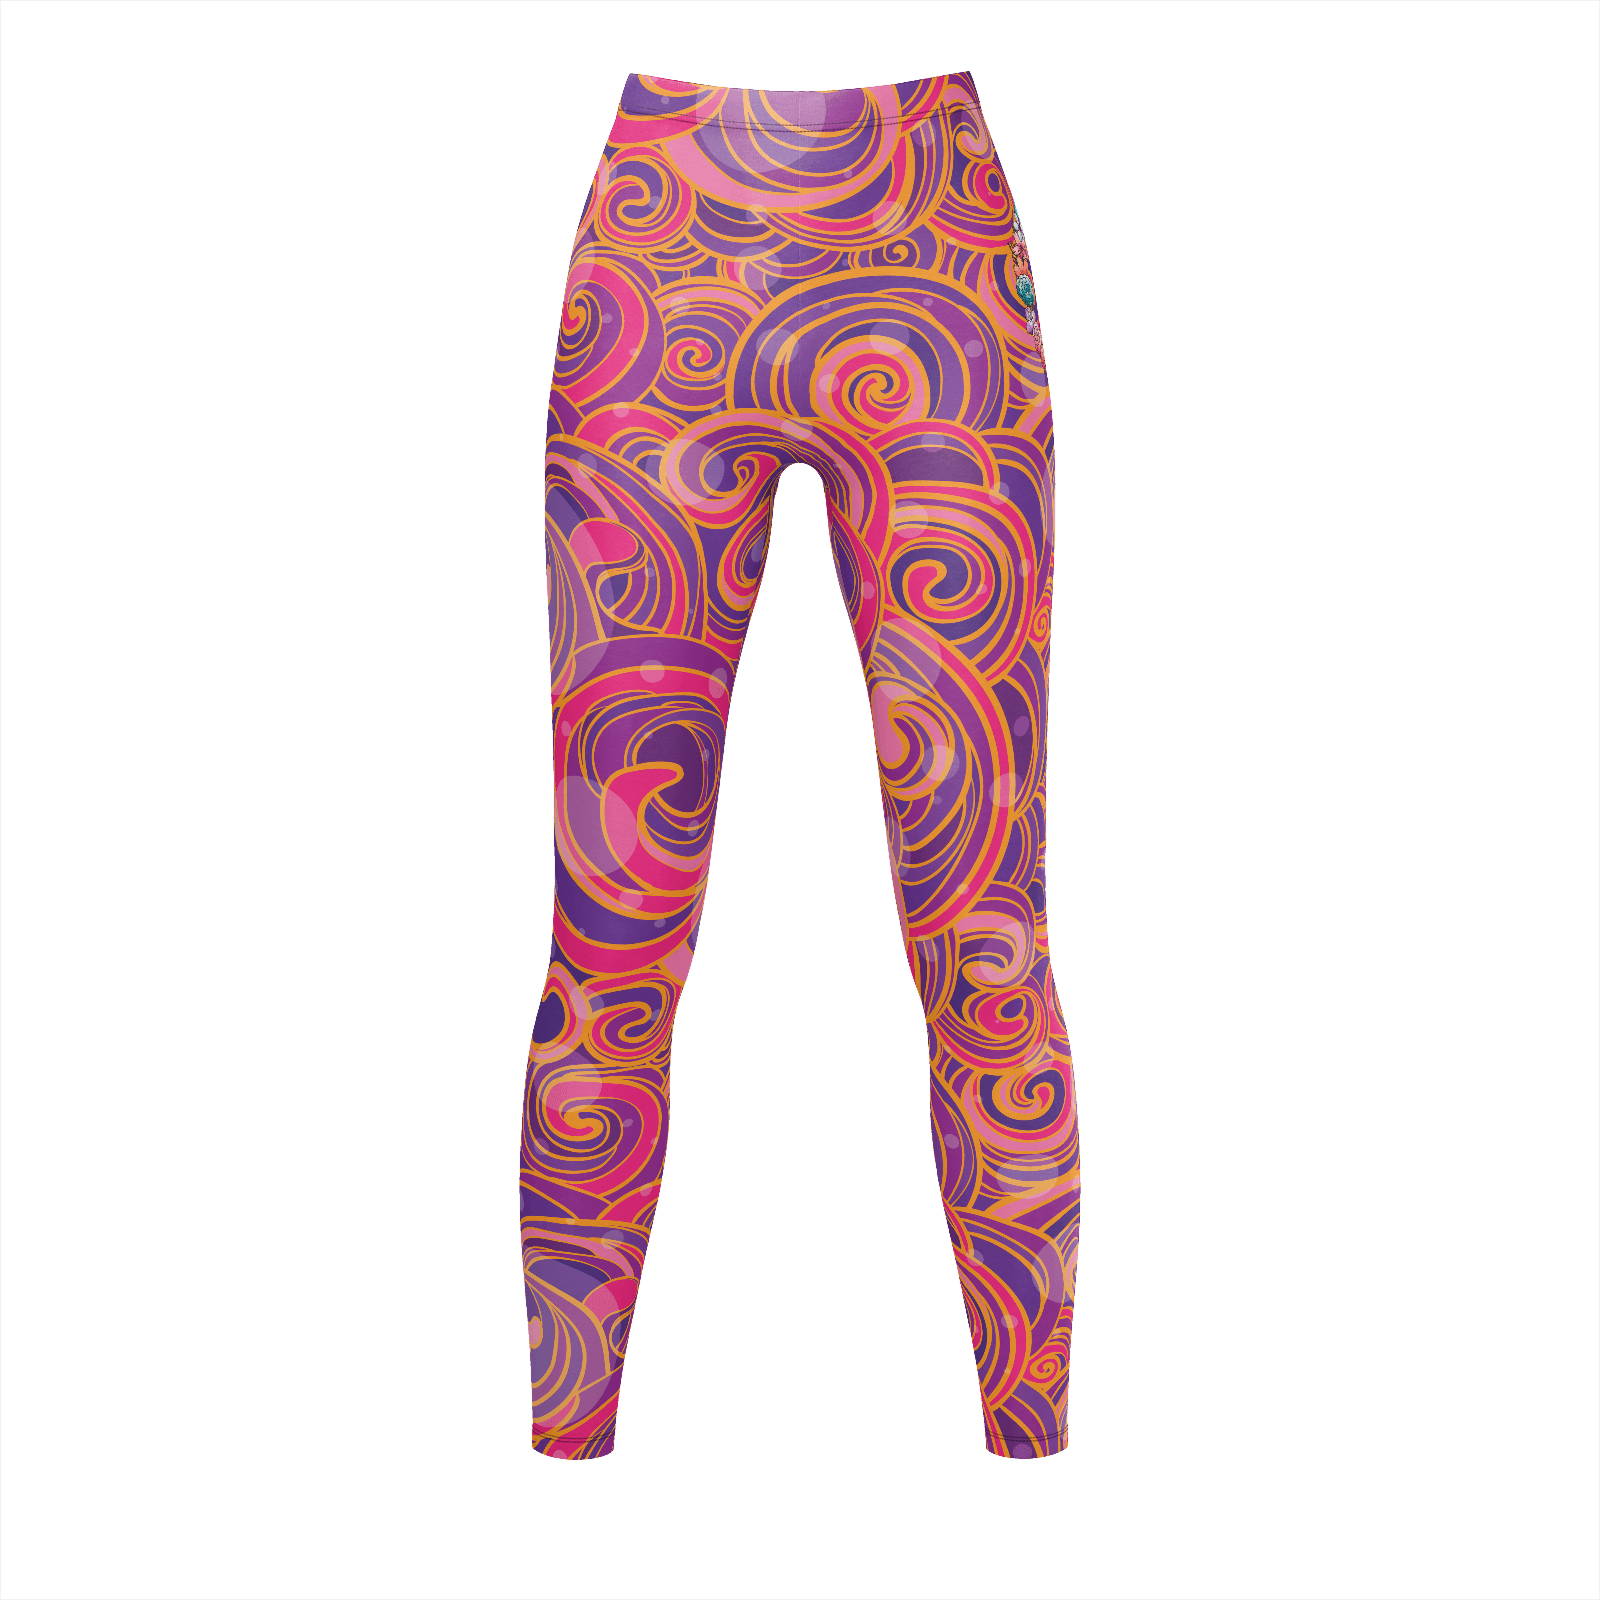 Swirled Peace Leggings